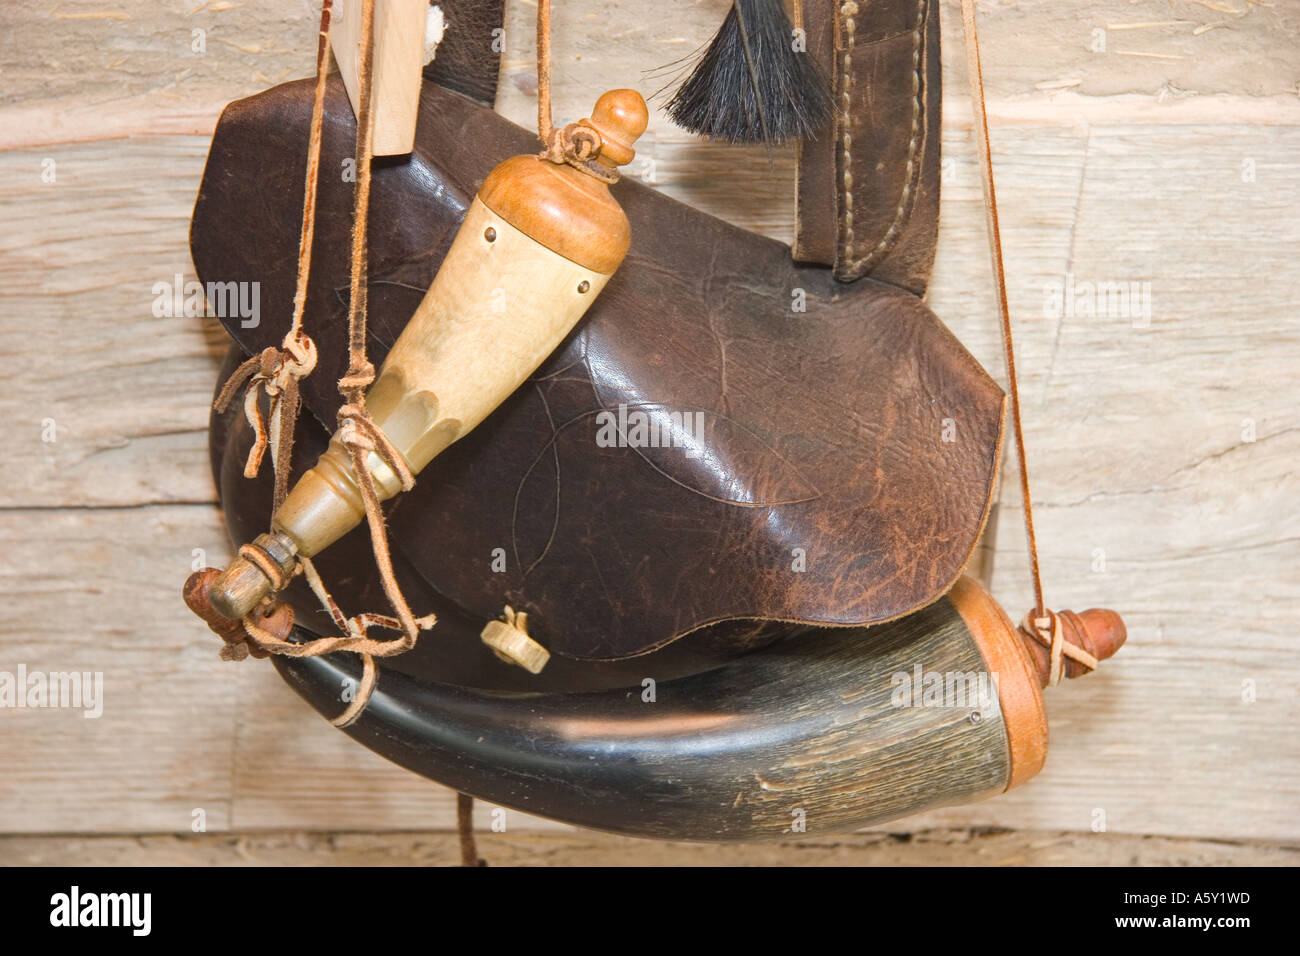 Pioneers 1800's Gunpowder Leather Pouch and Horn Hung on Cabin Wall - Stock Image